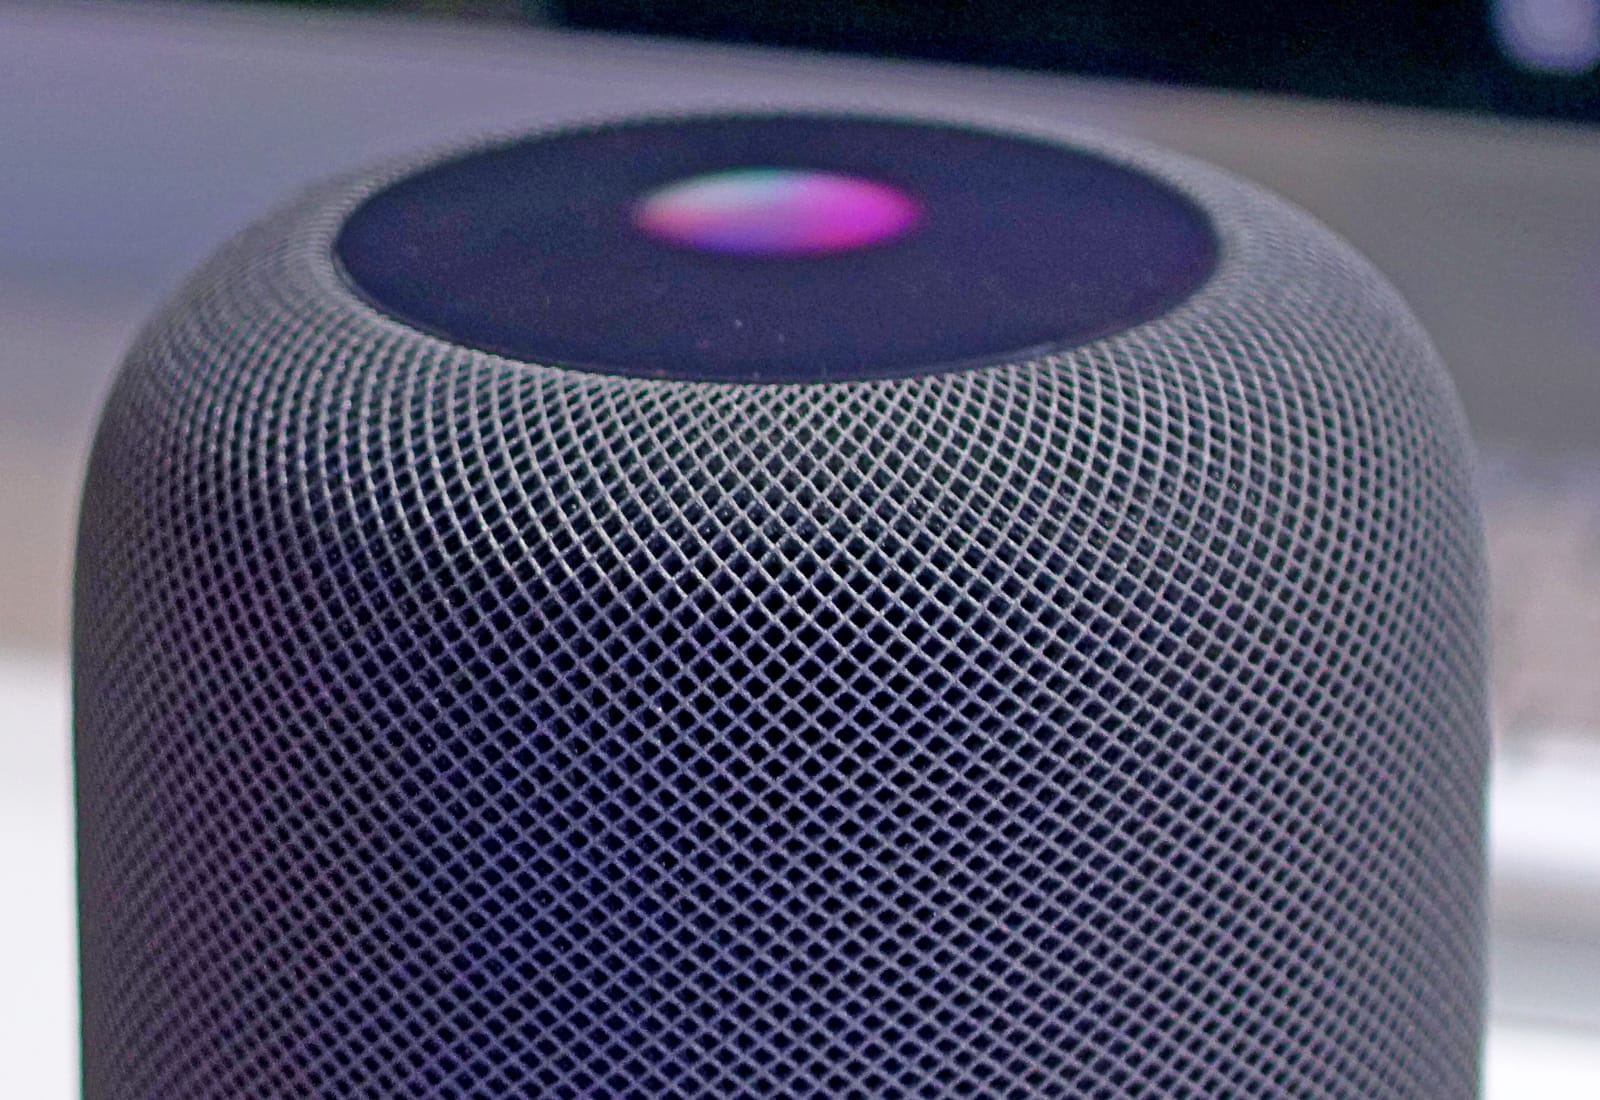 HomePod Close Up